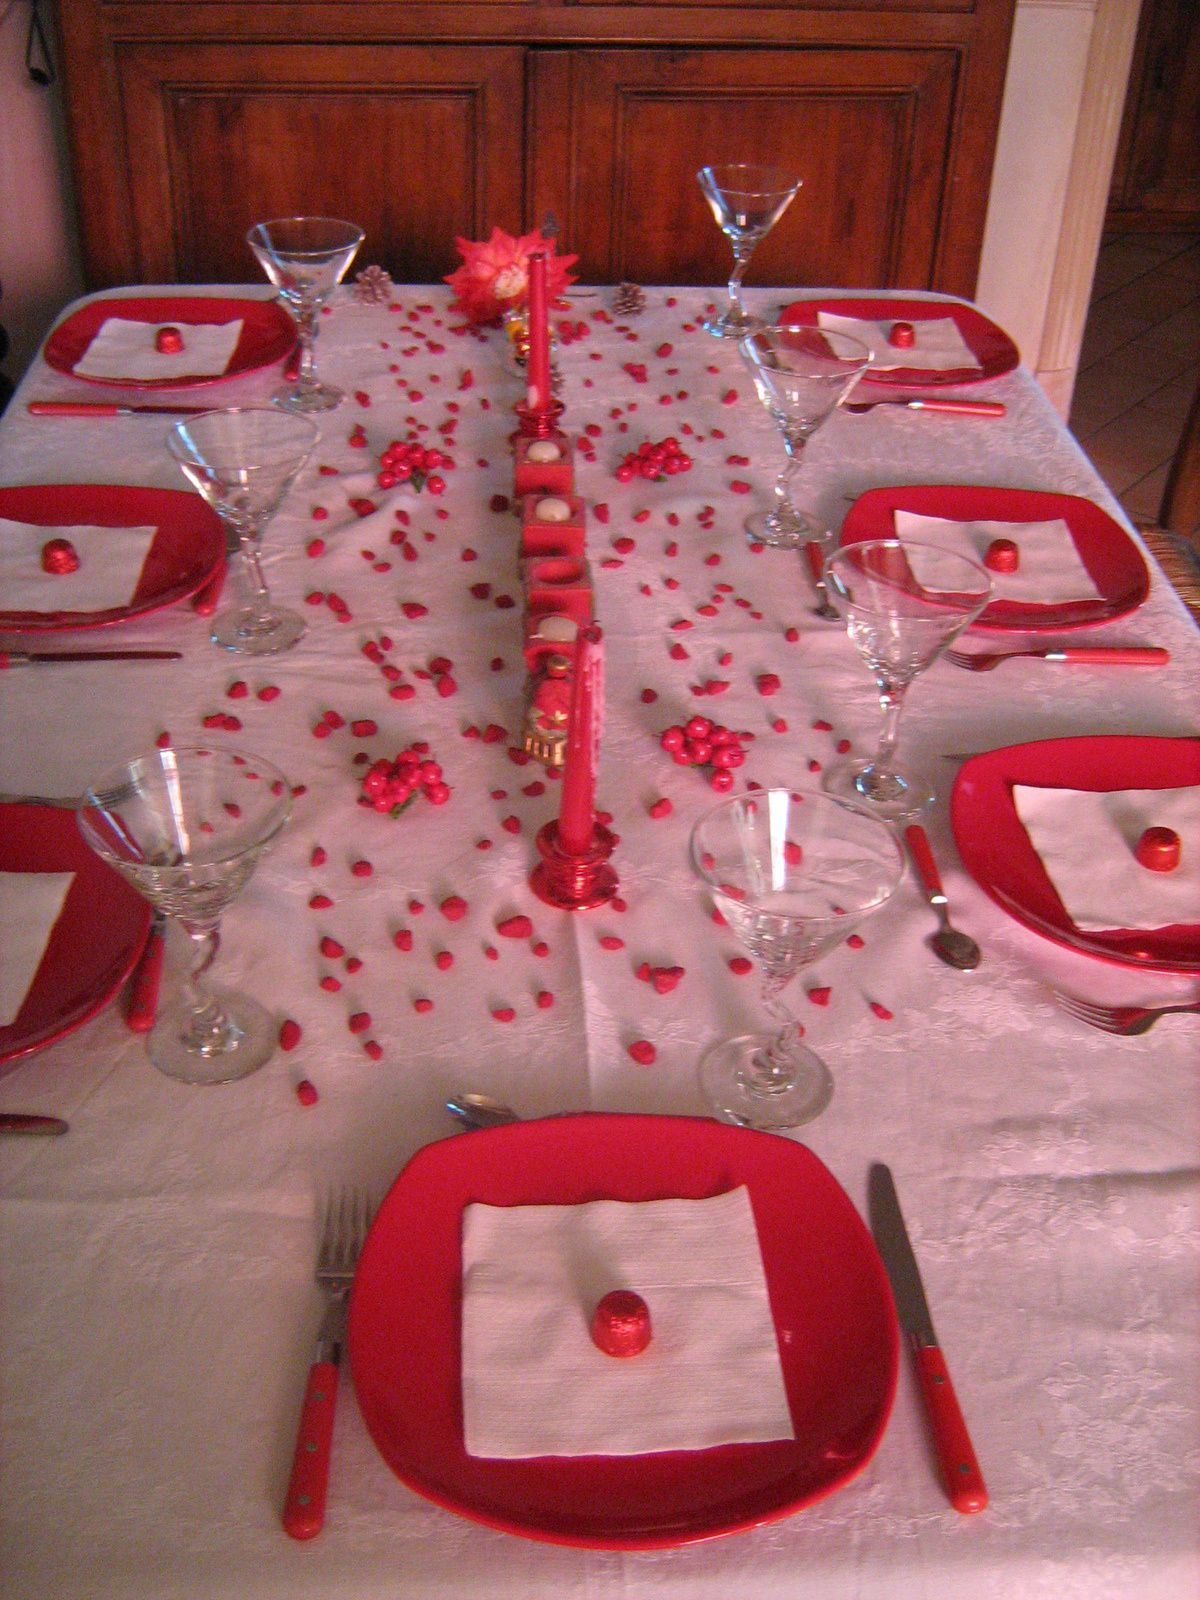 Table de noel en rouge et blanc 1 table et d co d 39 estelle for Table noel rouge et blanc